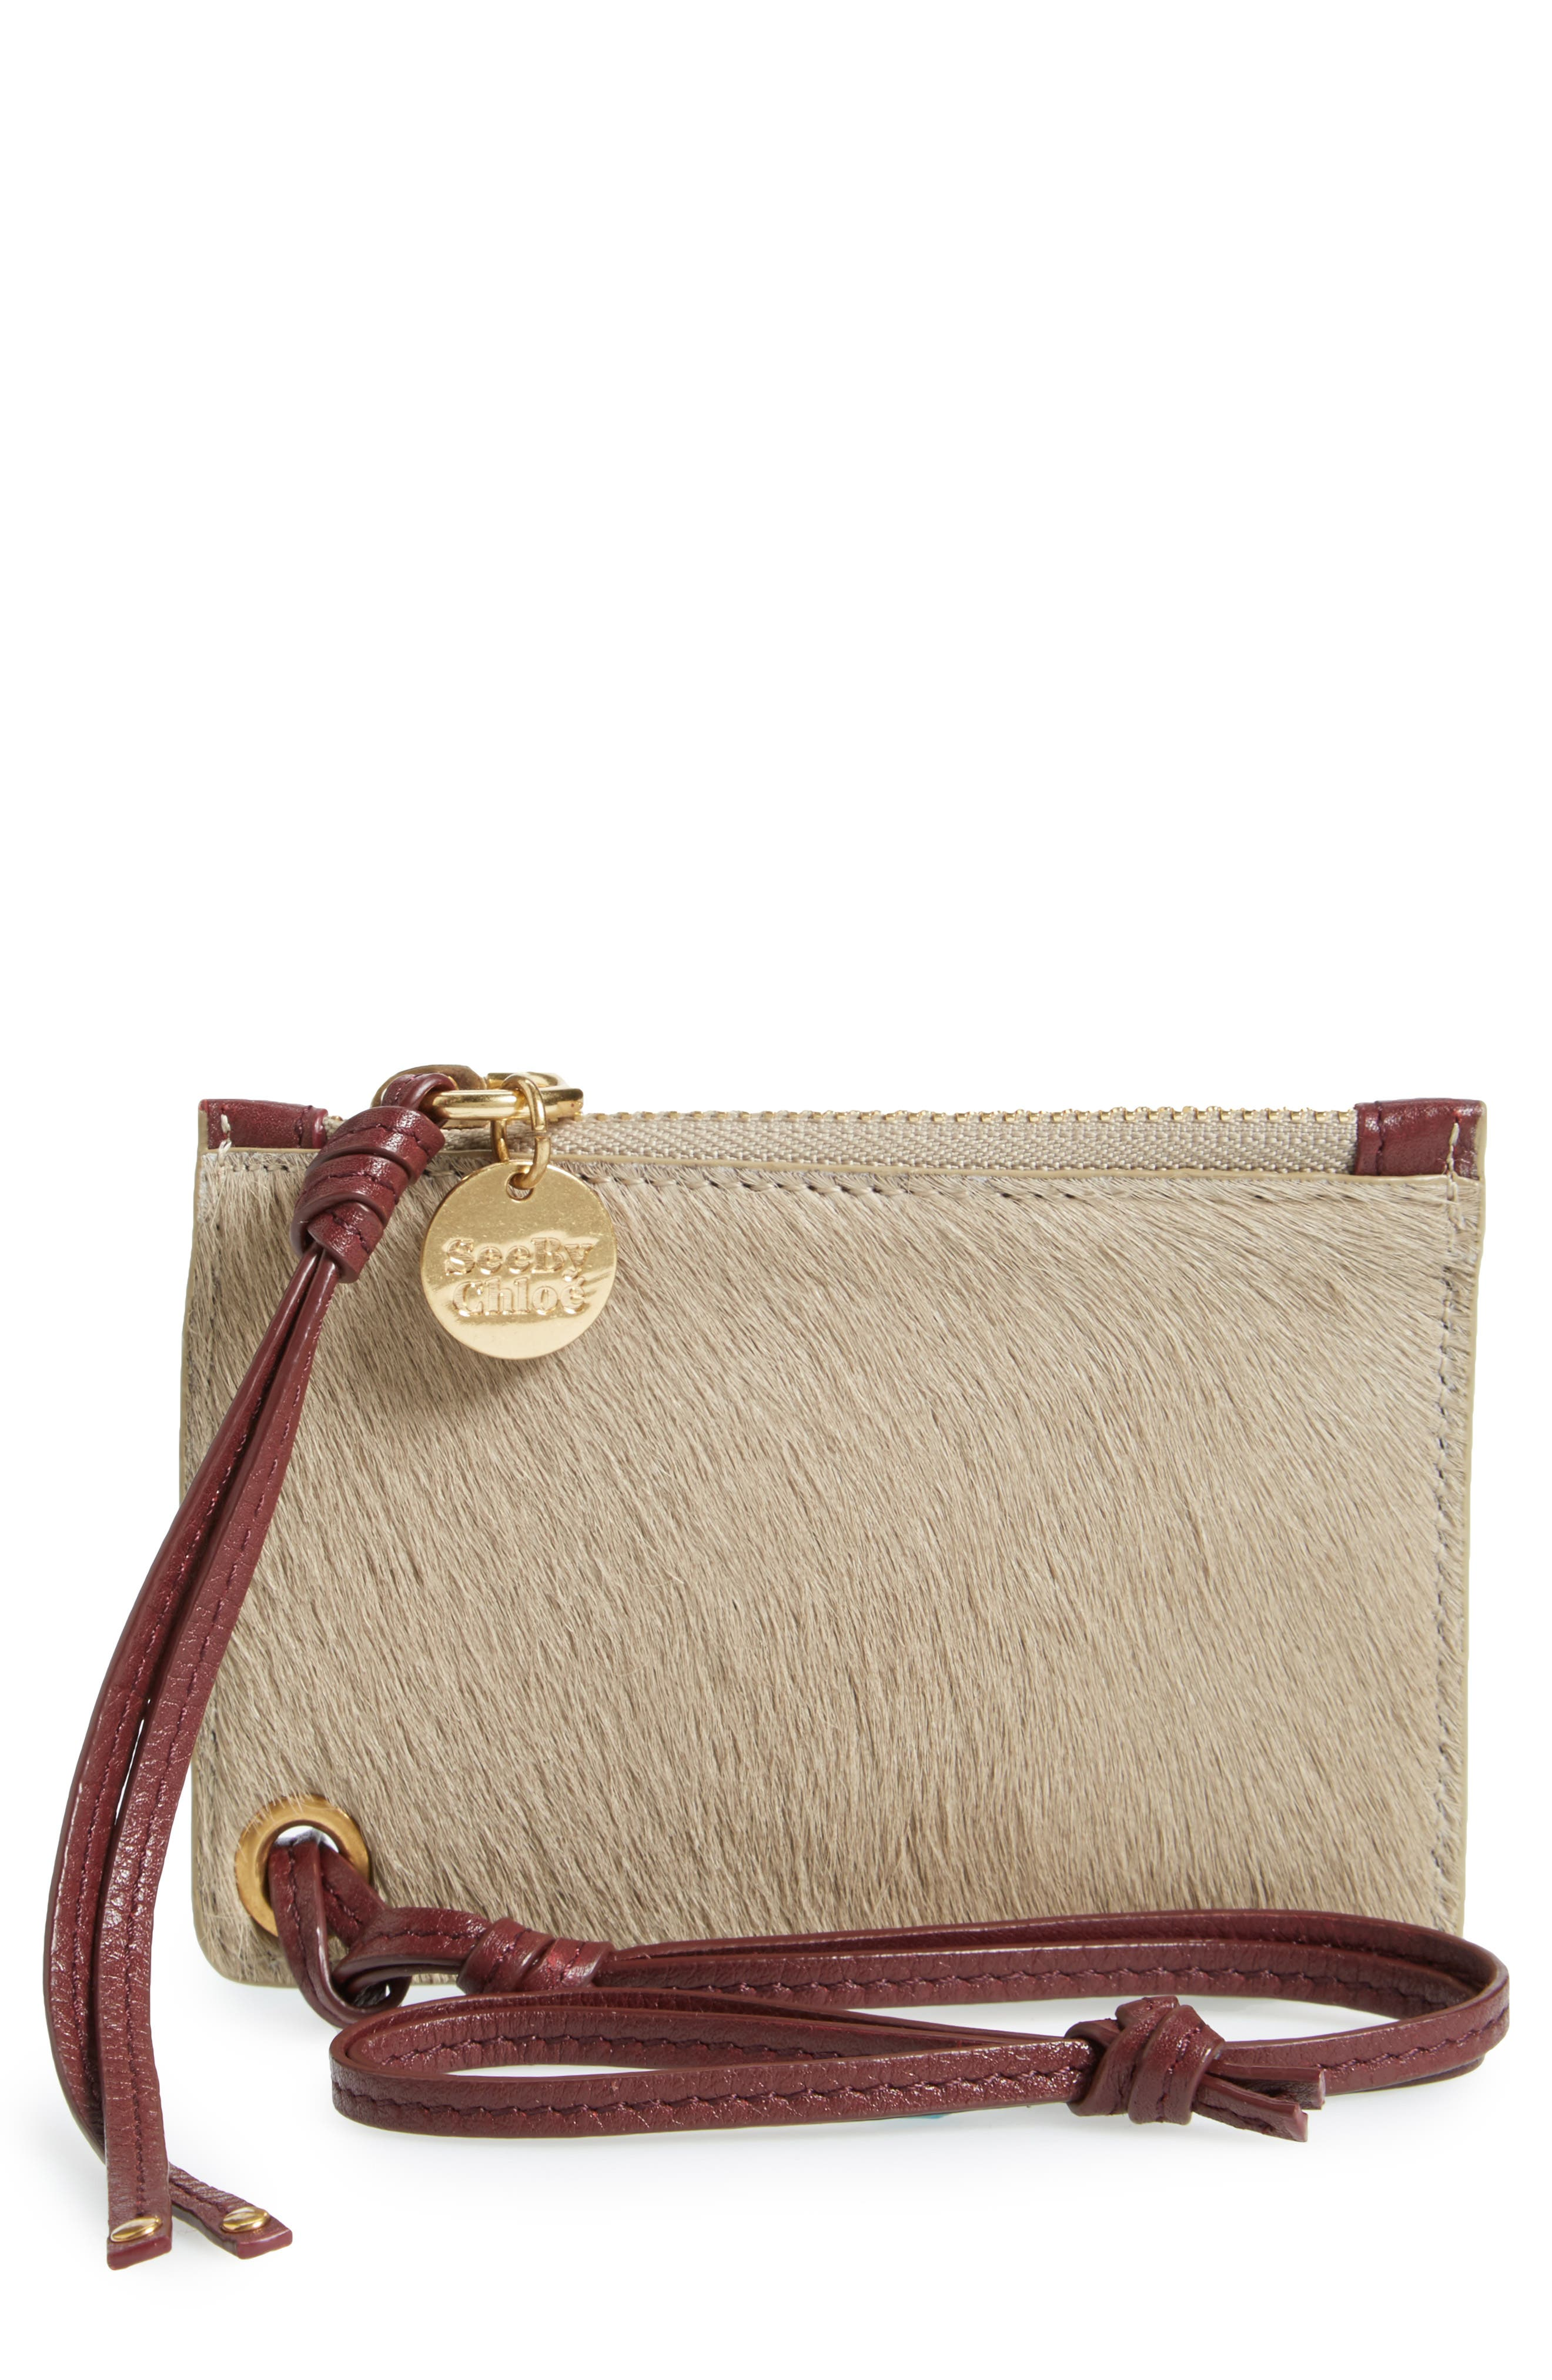 Alternate Image 1 Selected - See by Chloé Genuine Calf Hair Passport Holder & Leather Card Case